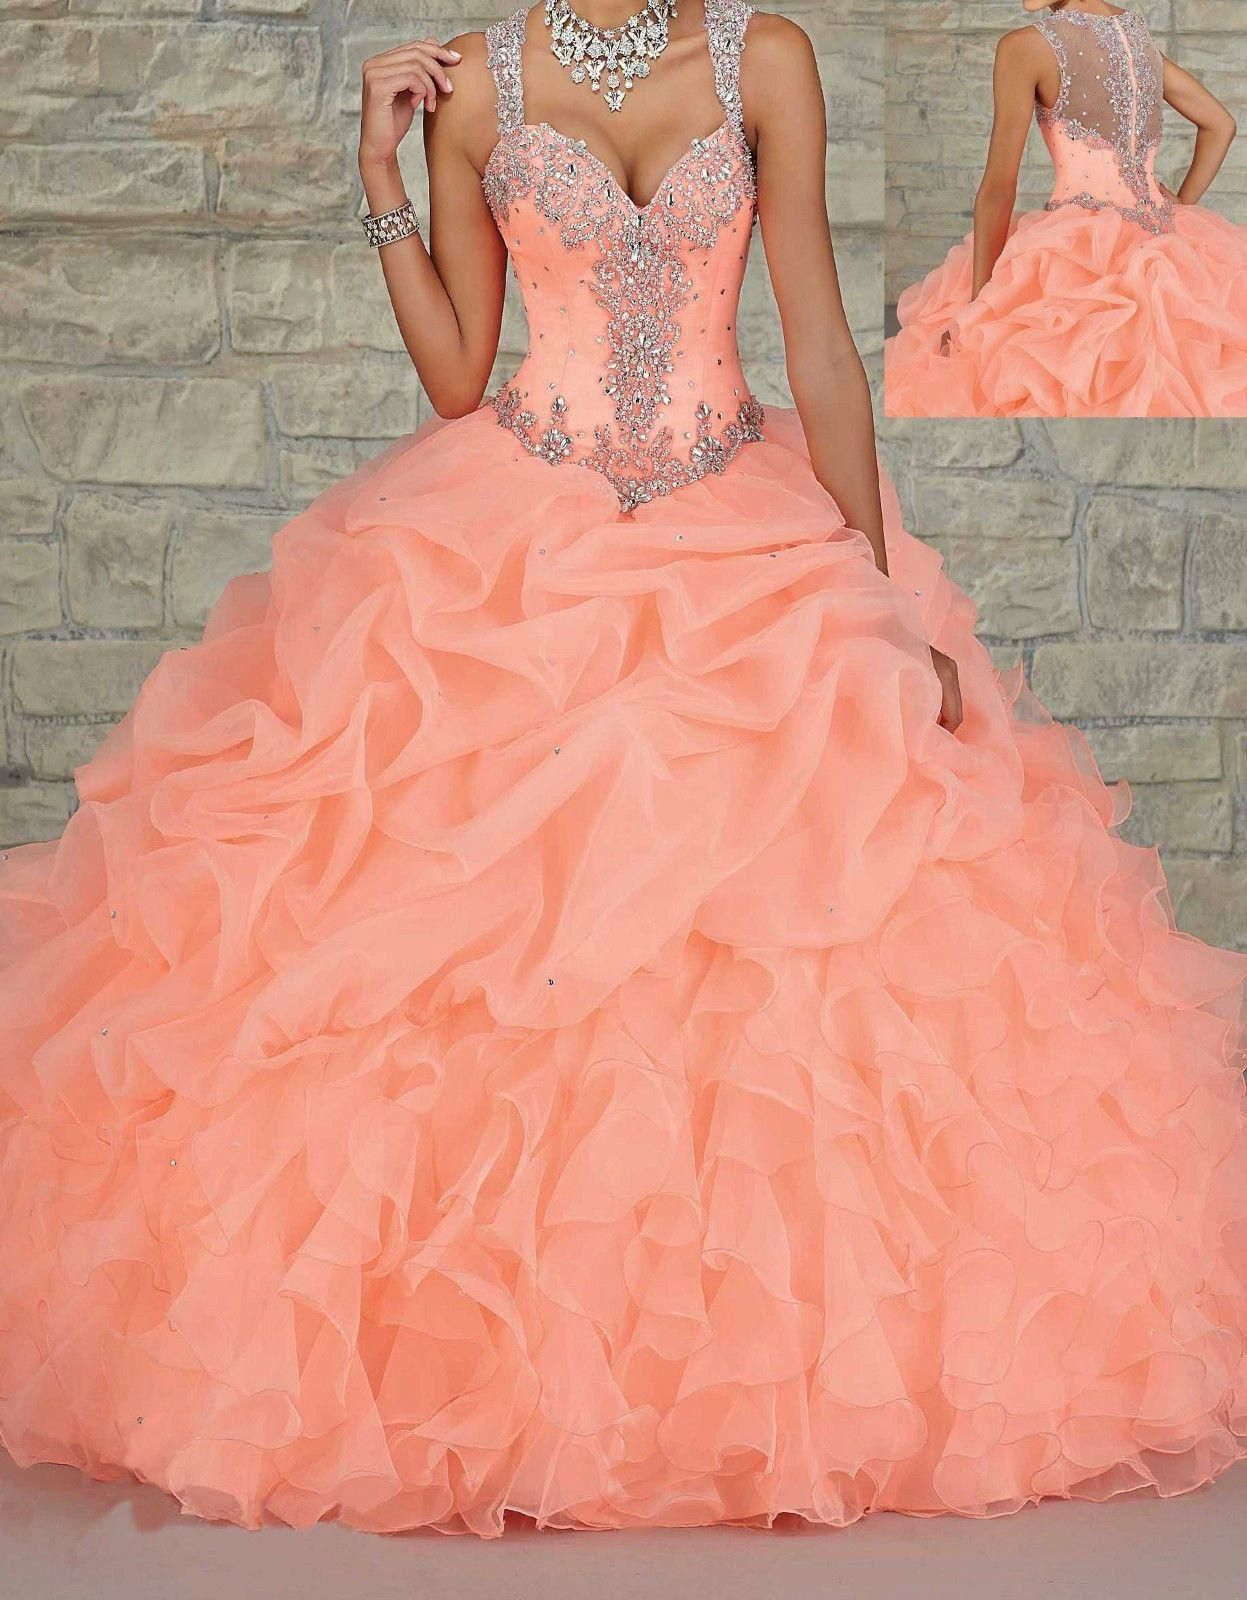 Custom Made 2015 Luxury Coral Quinceanera Dress Sexy Sweetheart Floor Length  Organza Crystal Beaded Long Prom Ball Gown Wedding Dresses Online with ... e343d1d89bb2